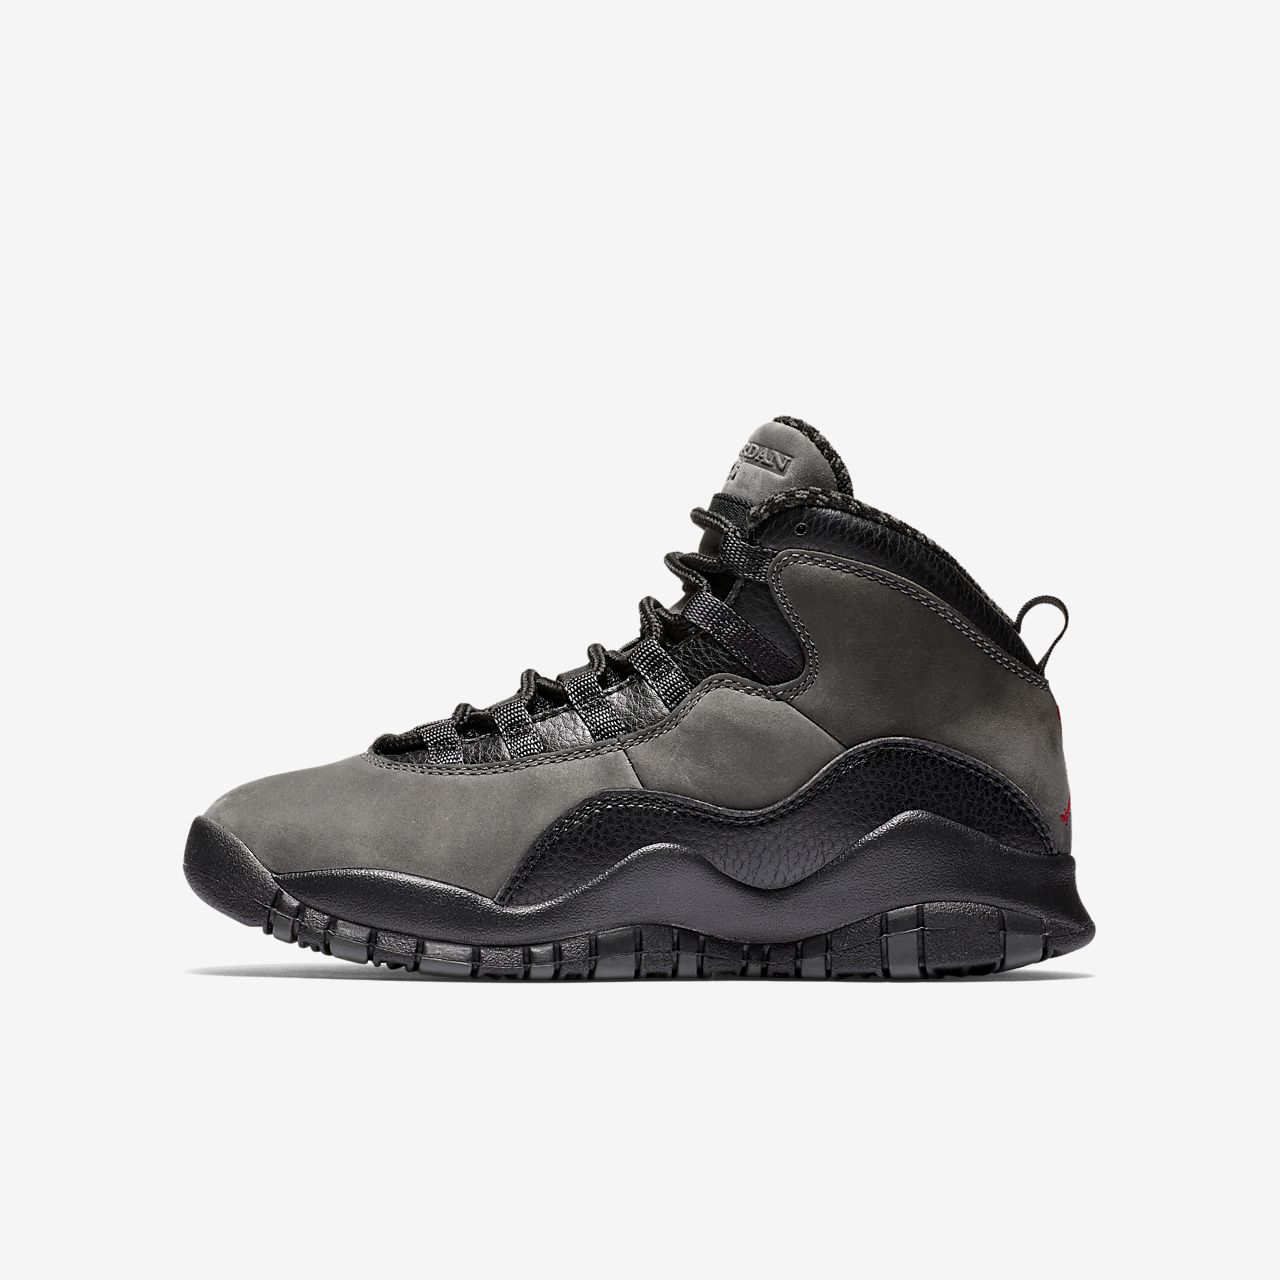 ... Air Jordan Retro 10 (3.5y-7y) Big Kids' Shoe